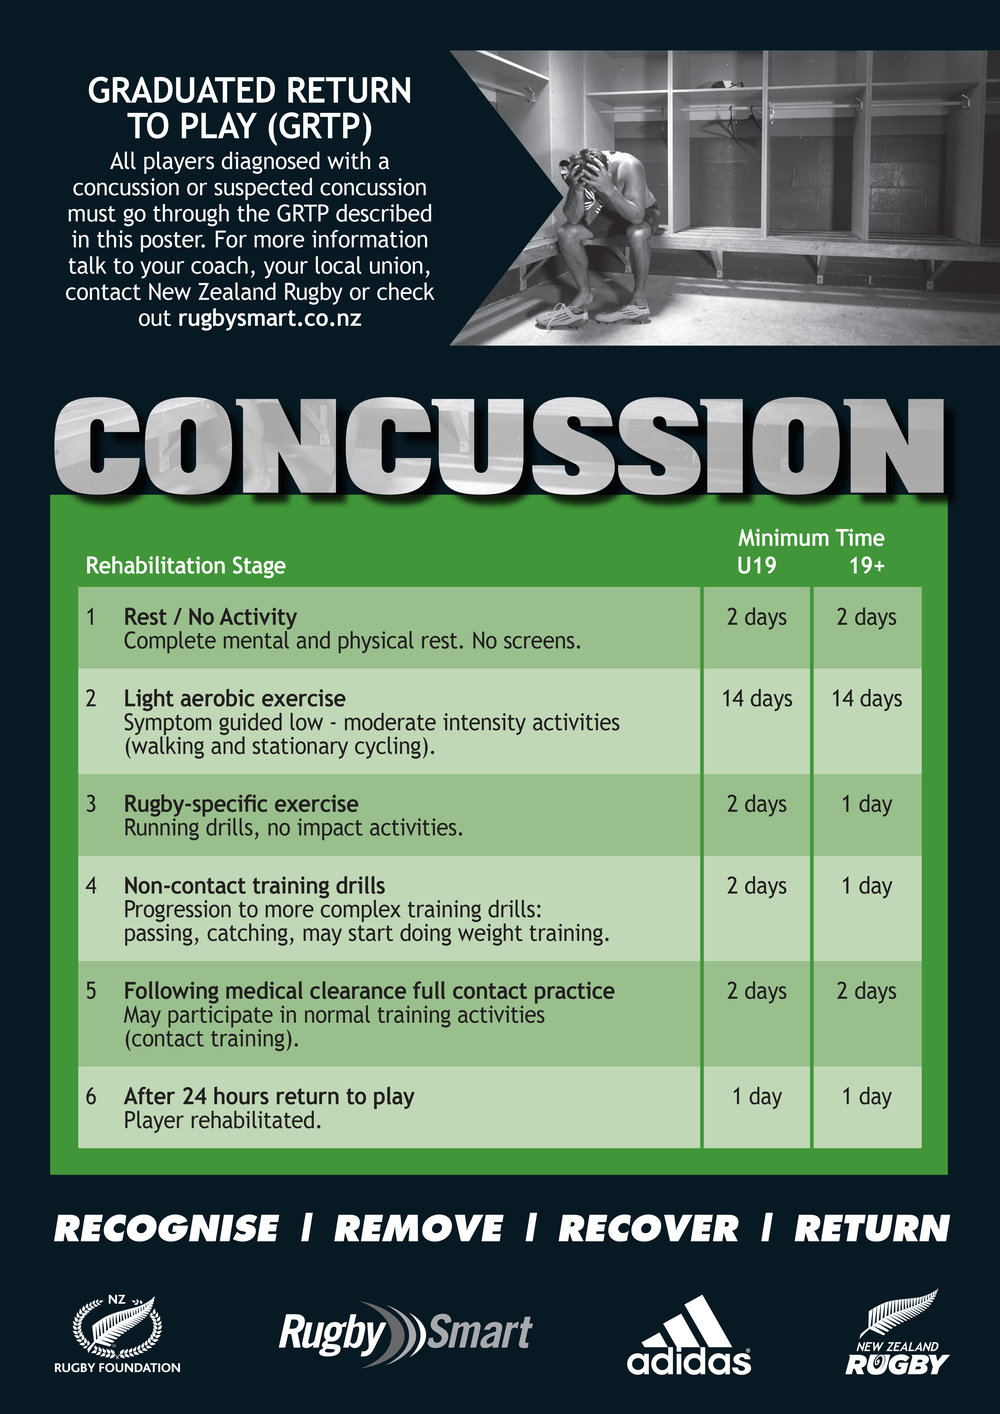 GRTP CONCUSSION - nz rugby